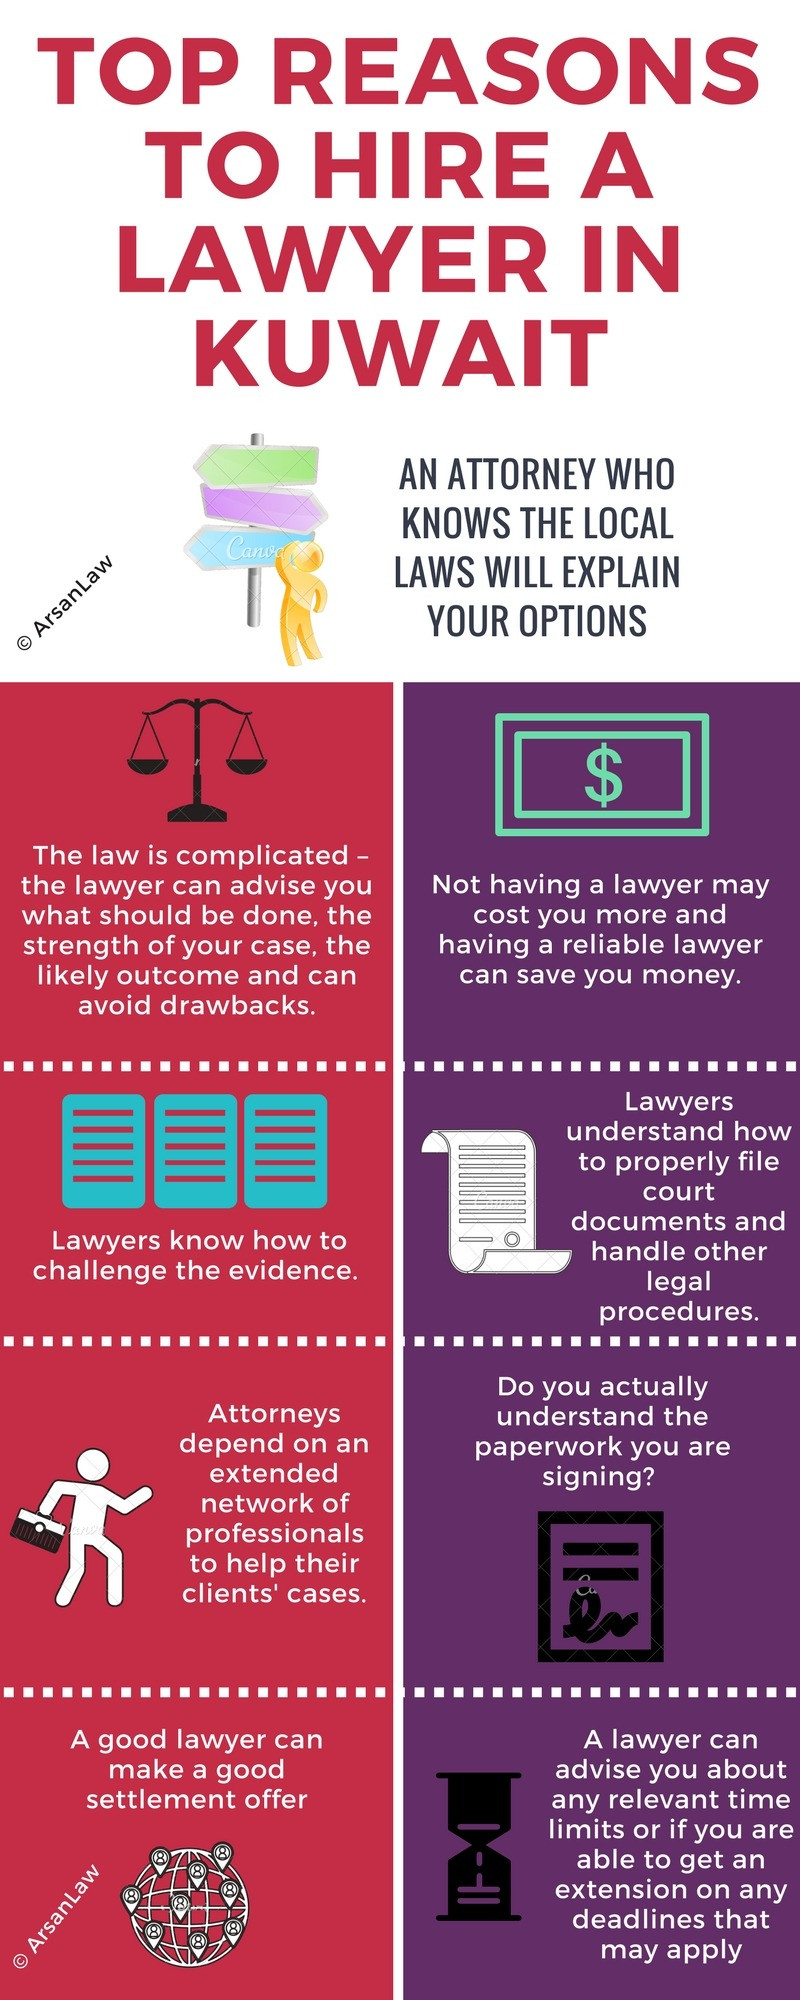 Top_Reasons_to_Hire_lawyer_Infographic